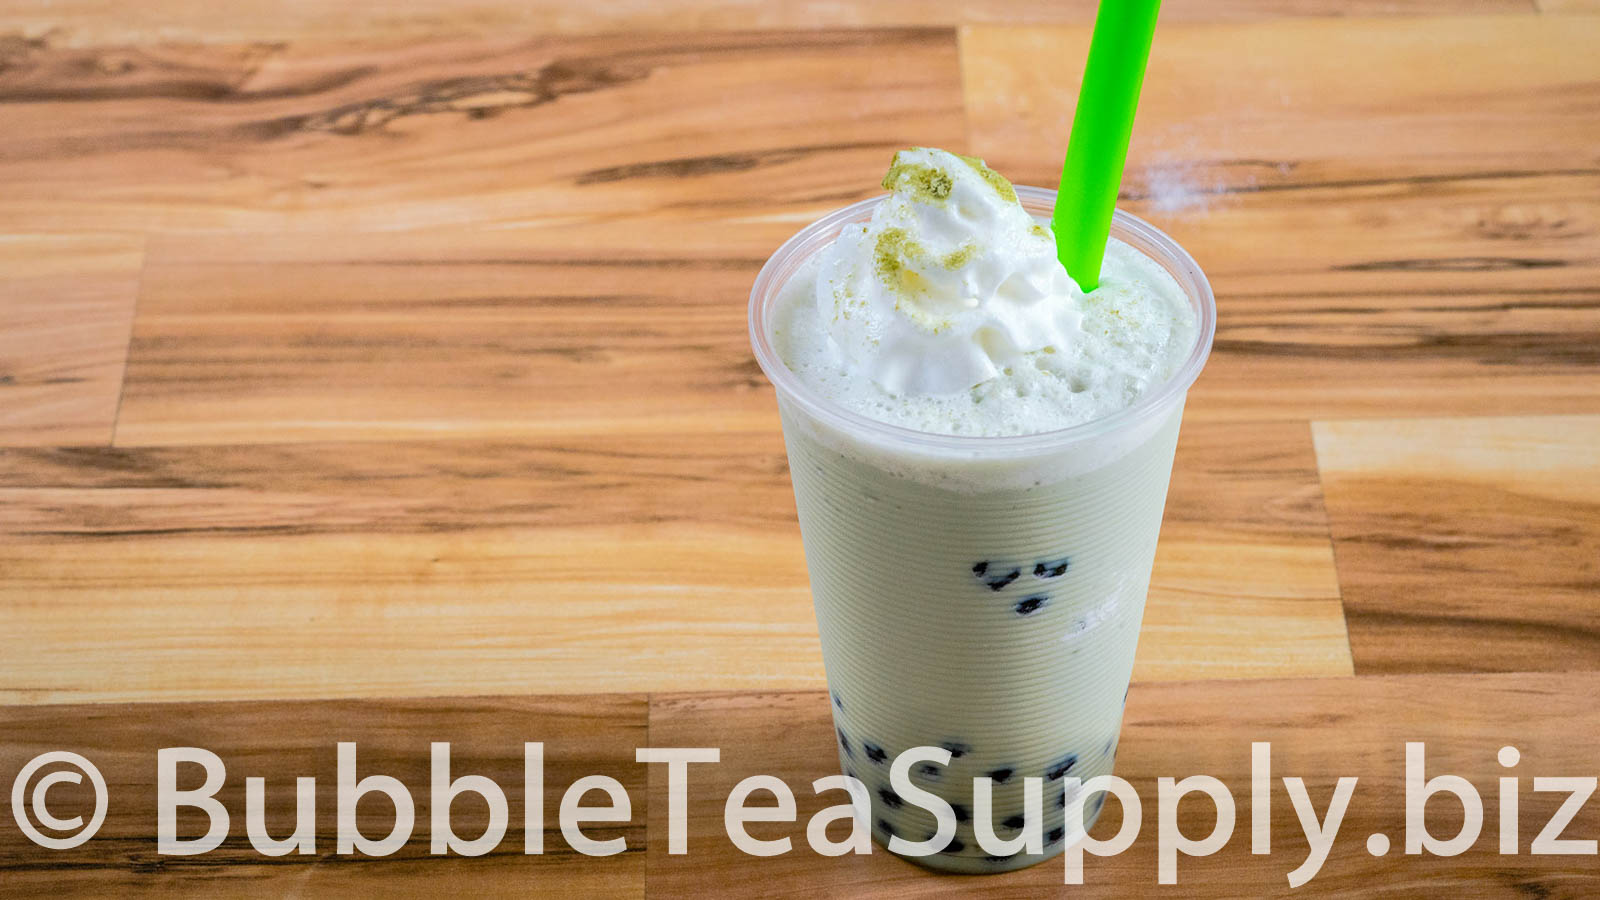 How to Make Green Tea Latte Bubble Tea with Boba Tapioca Pearls